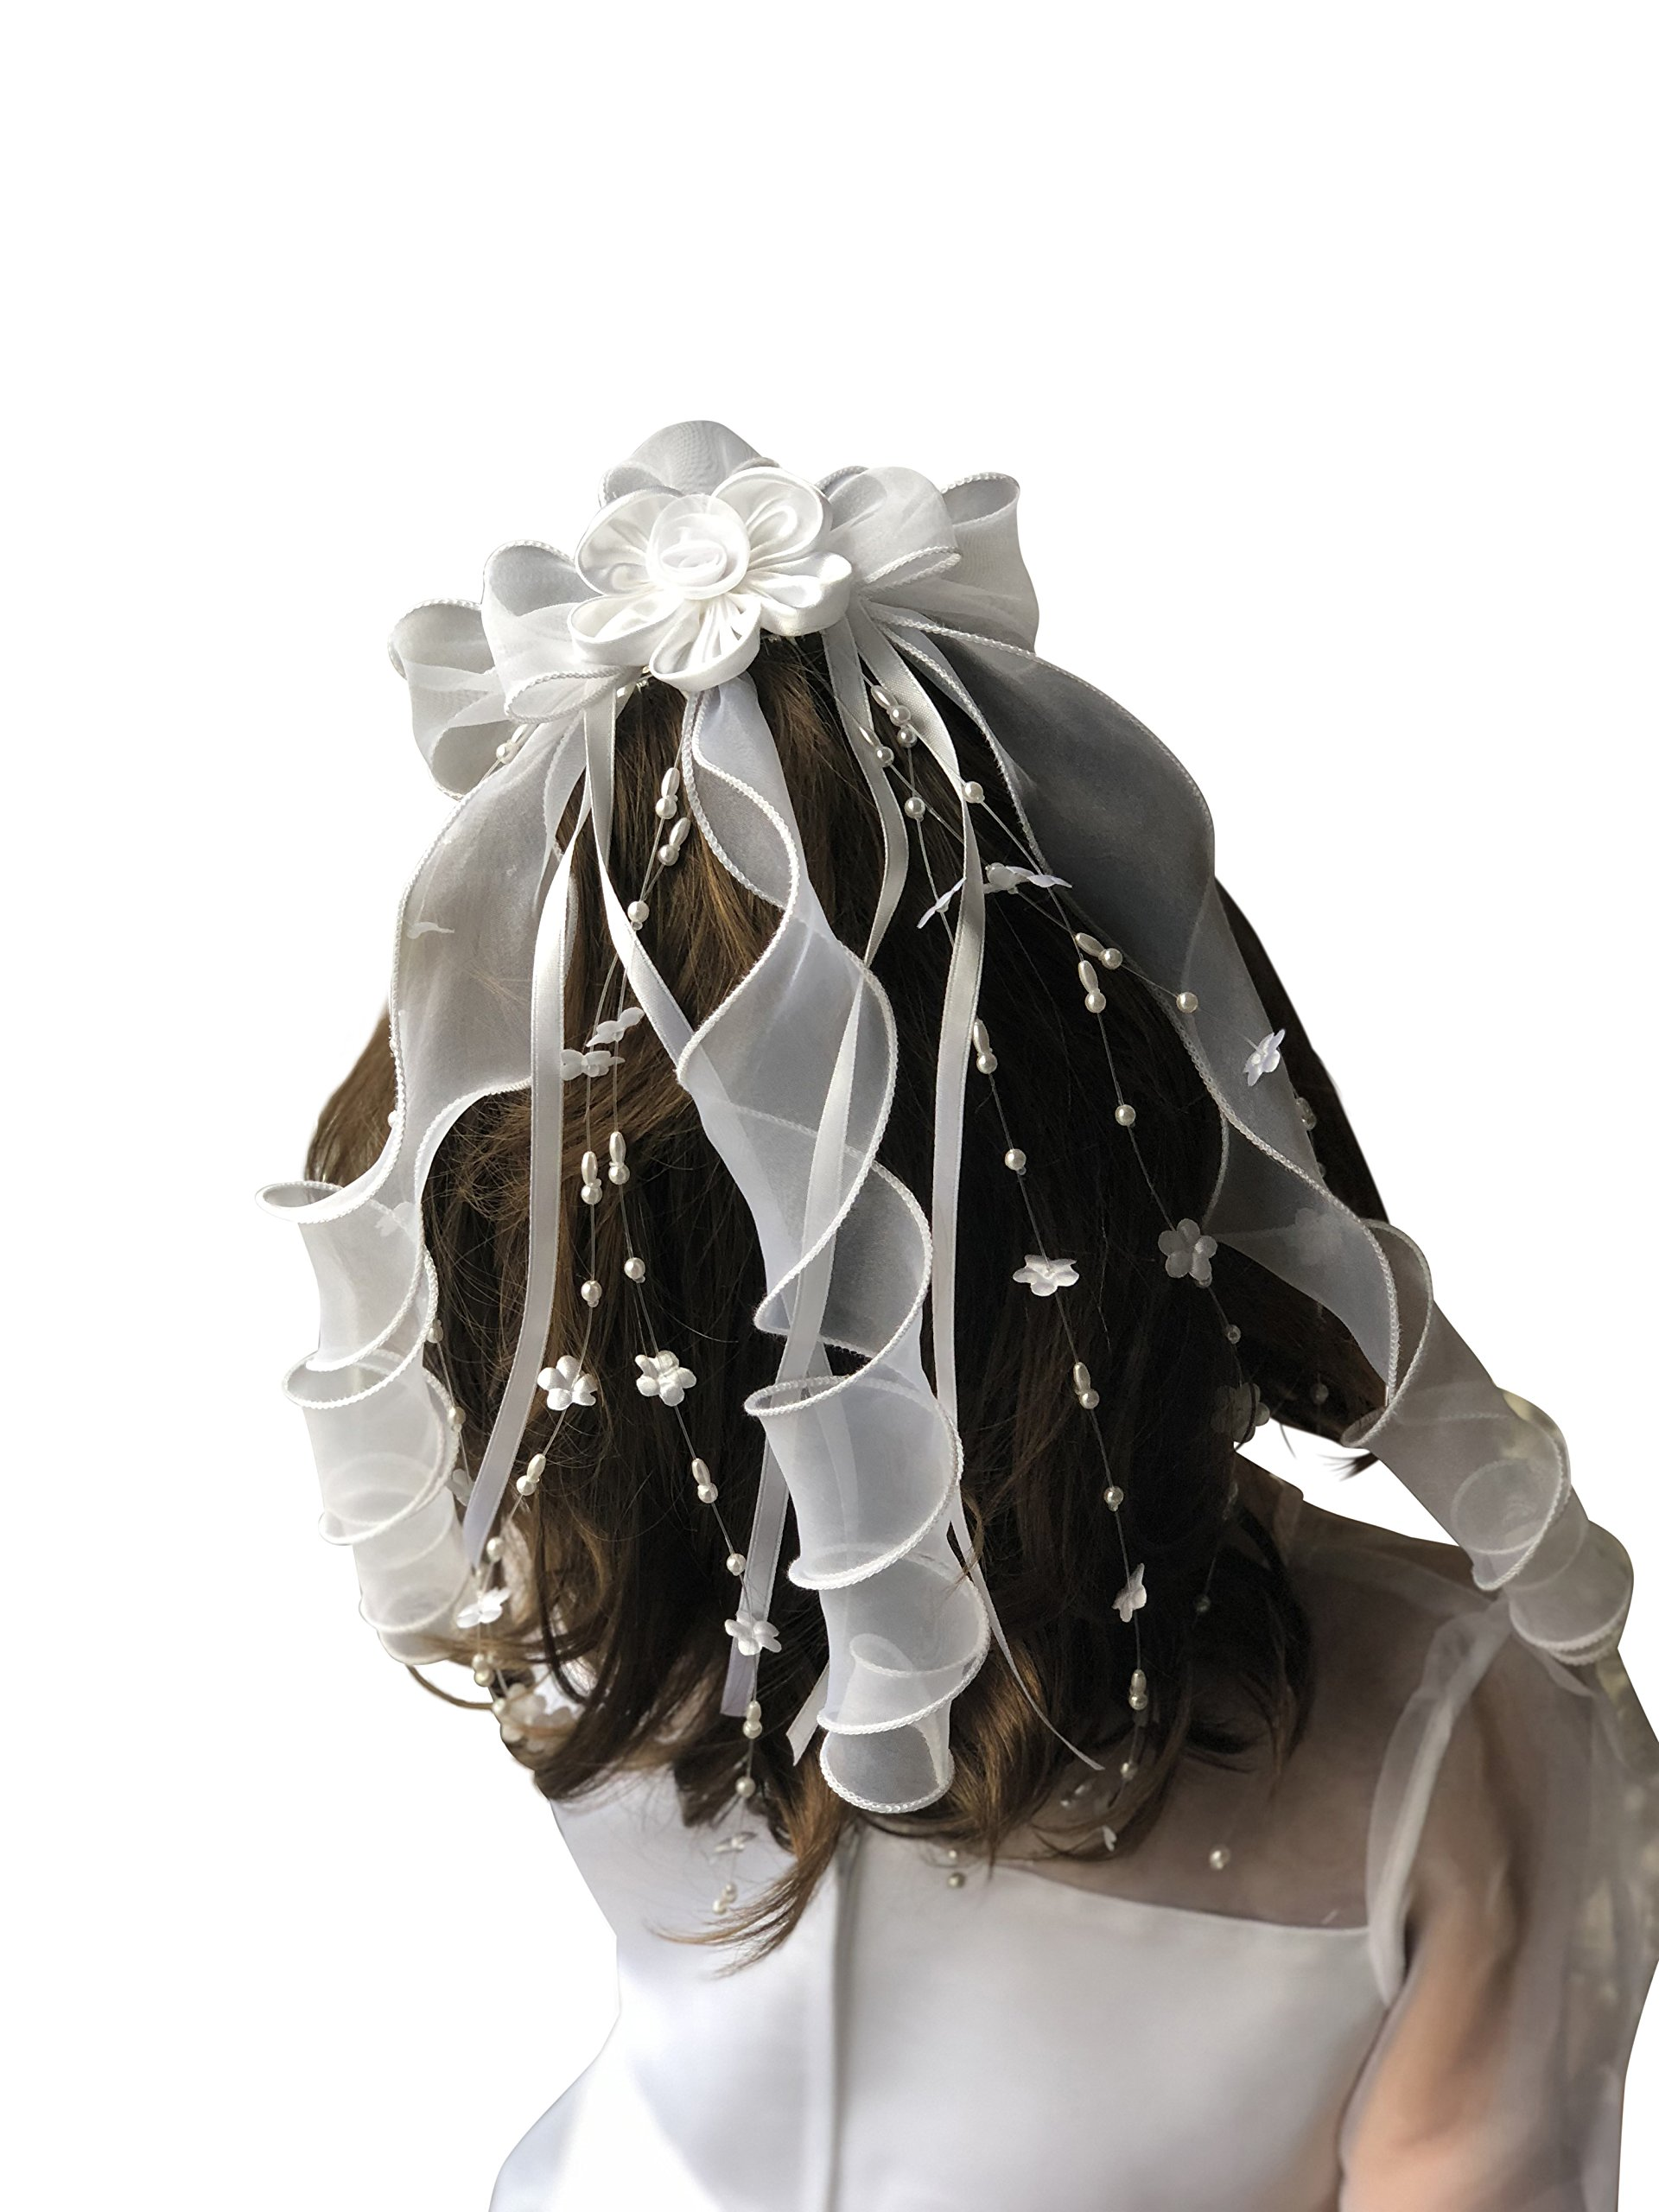 First Communion Veil White Foral Ribbon with Pearl from VGI by VGI (Image #4)